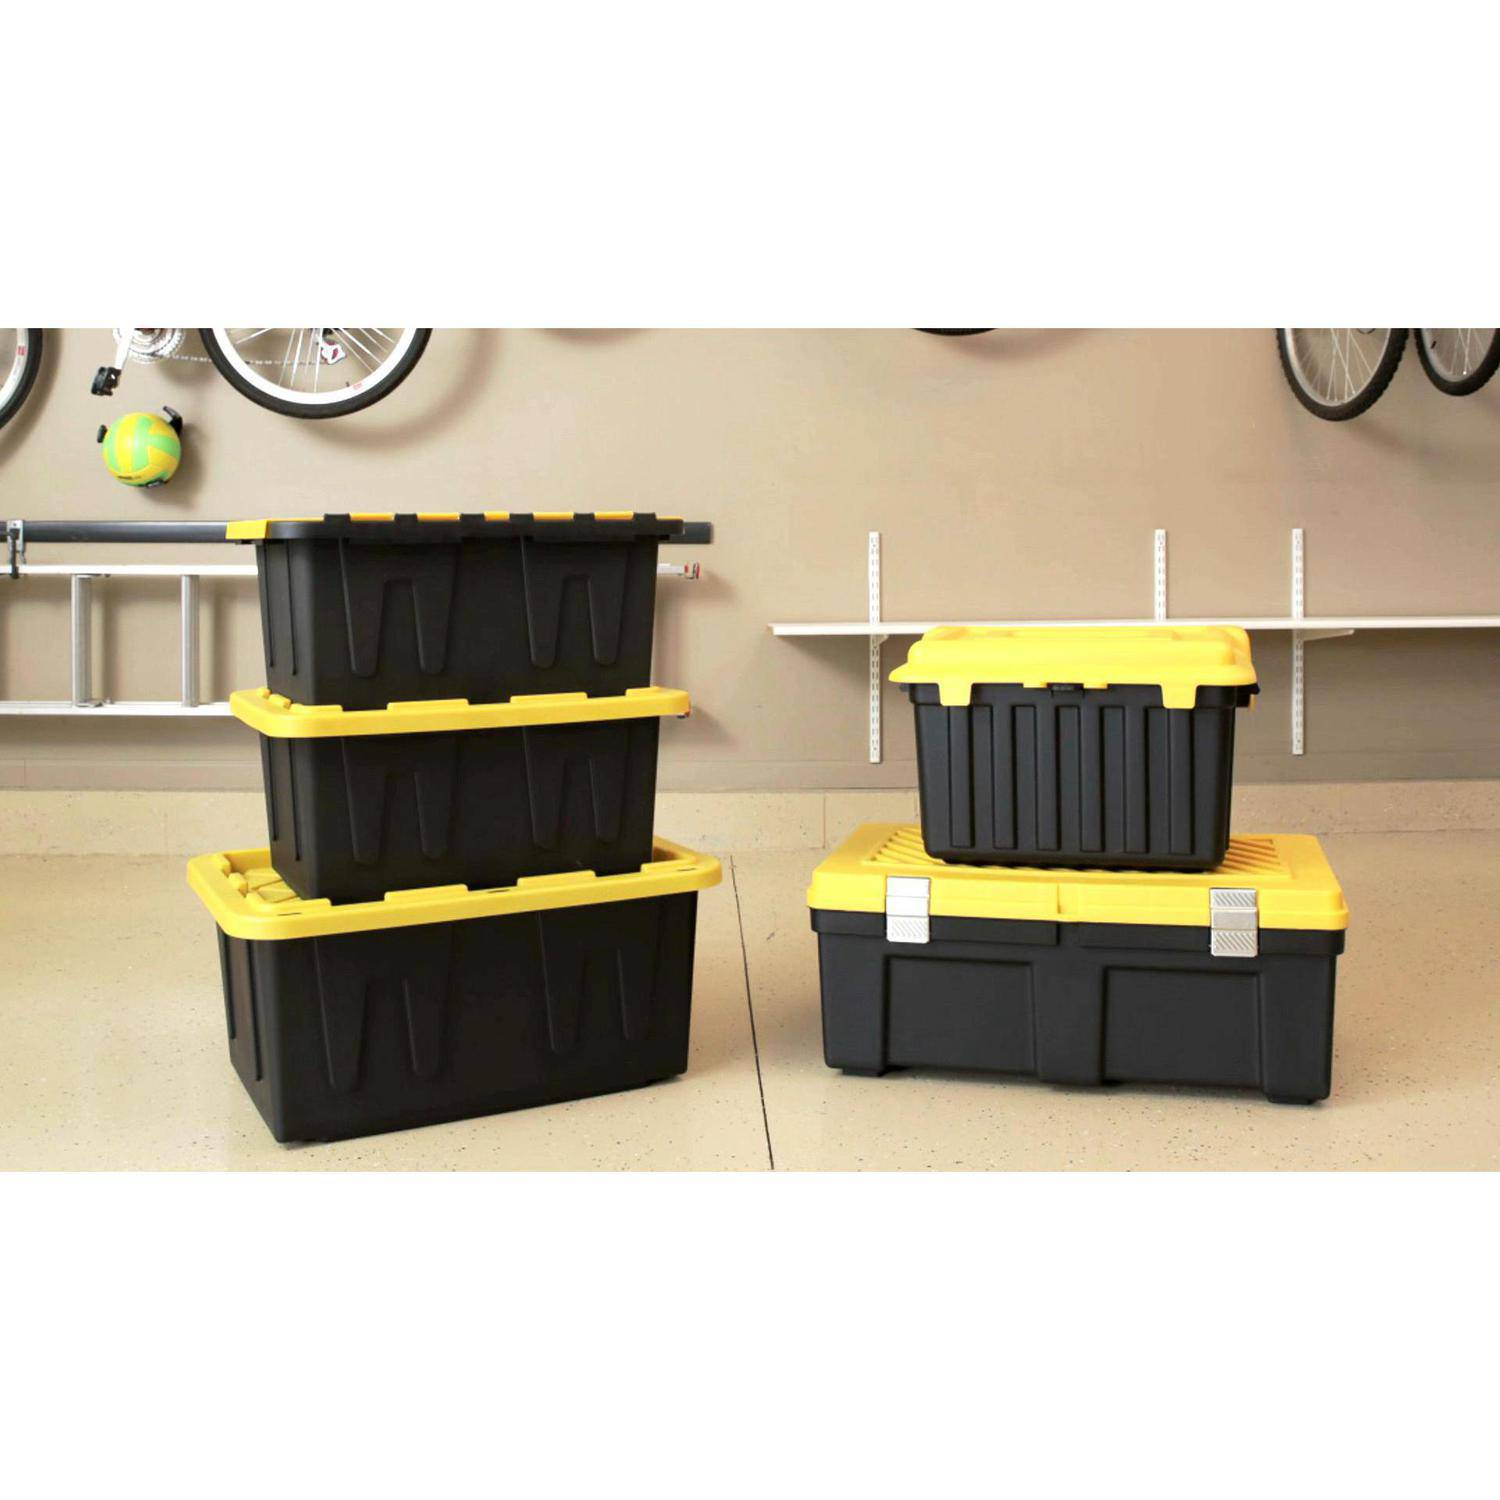 Storage Bins 15 Gallon Tough Tote 6 X Plastic Boxes Home Warehouse  Black/Yellow